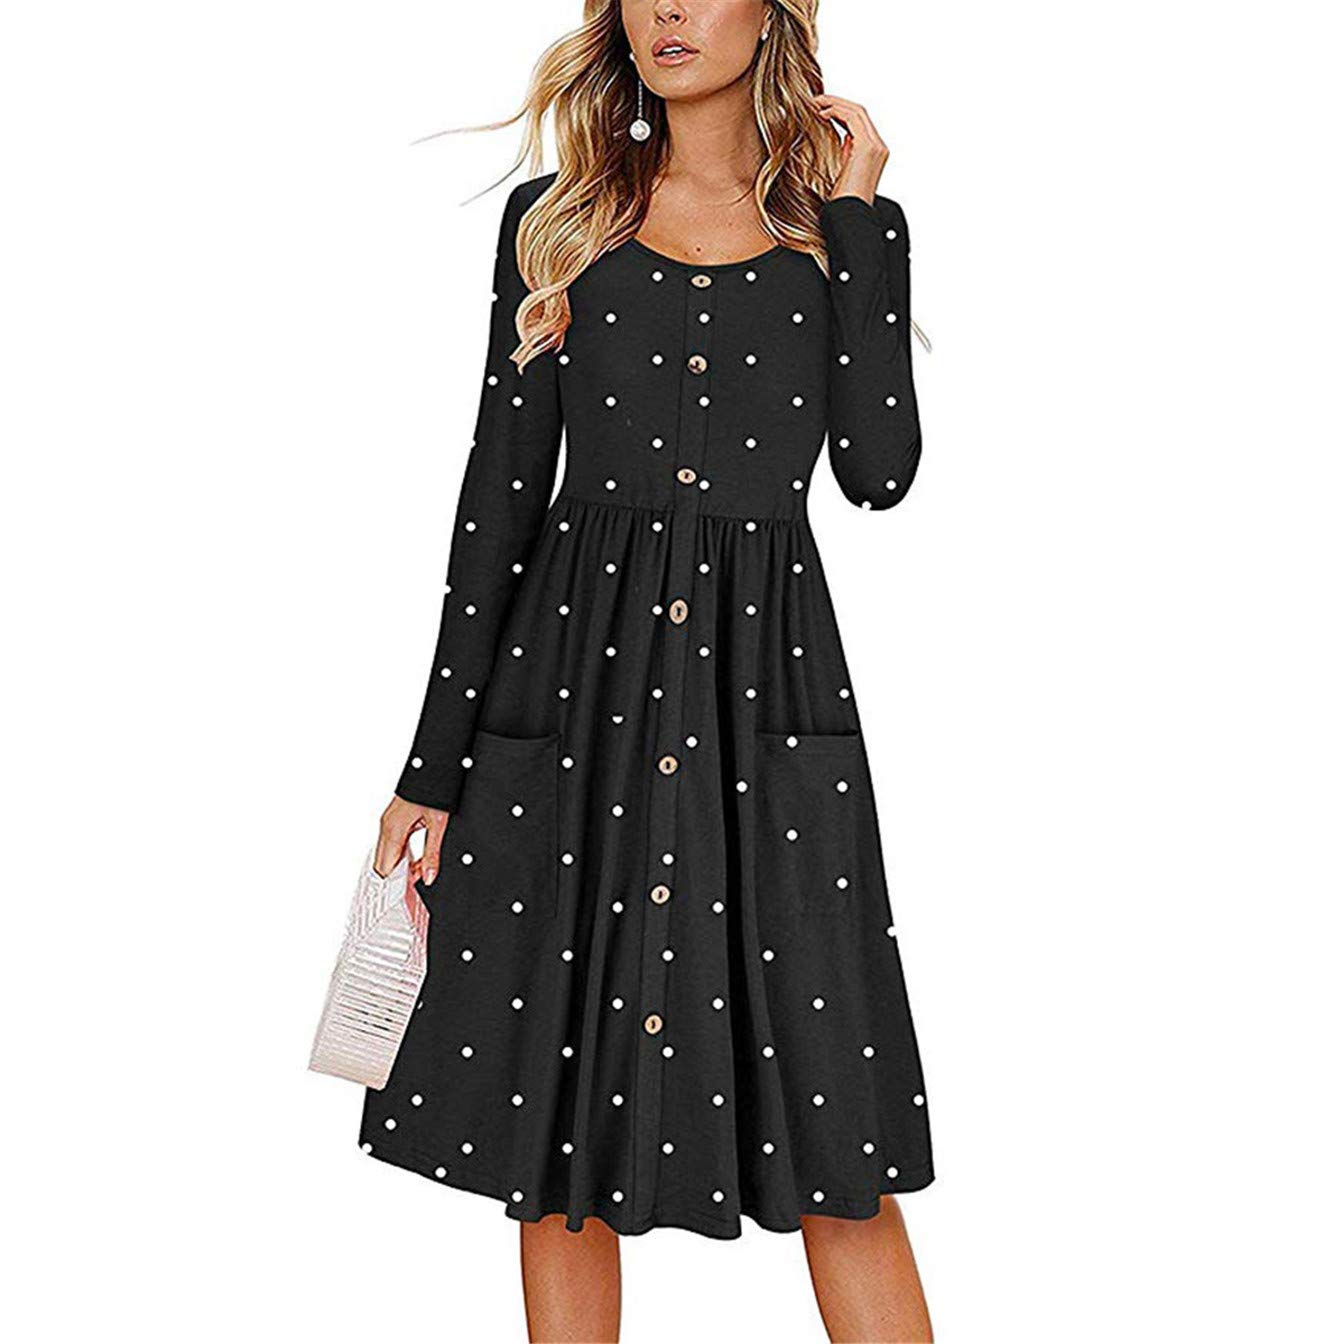 TIFENNY Womens Dot Print O Neck Button Dress Long Sleeve with Pocket Fashion Loose Casual Beach Long Maxi Dress